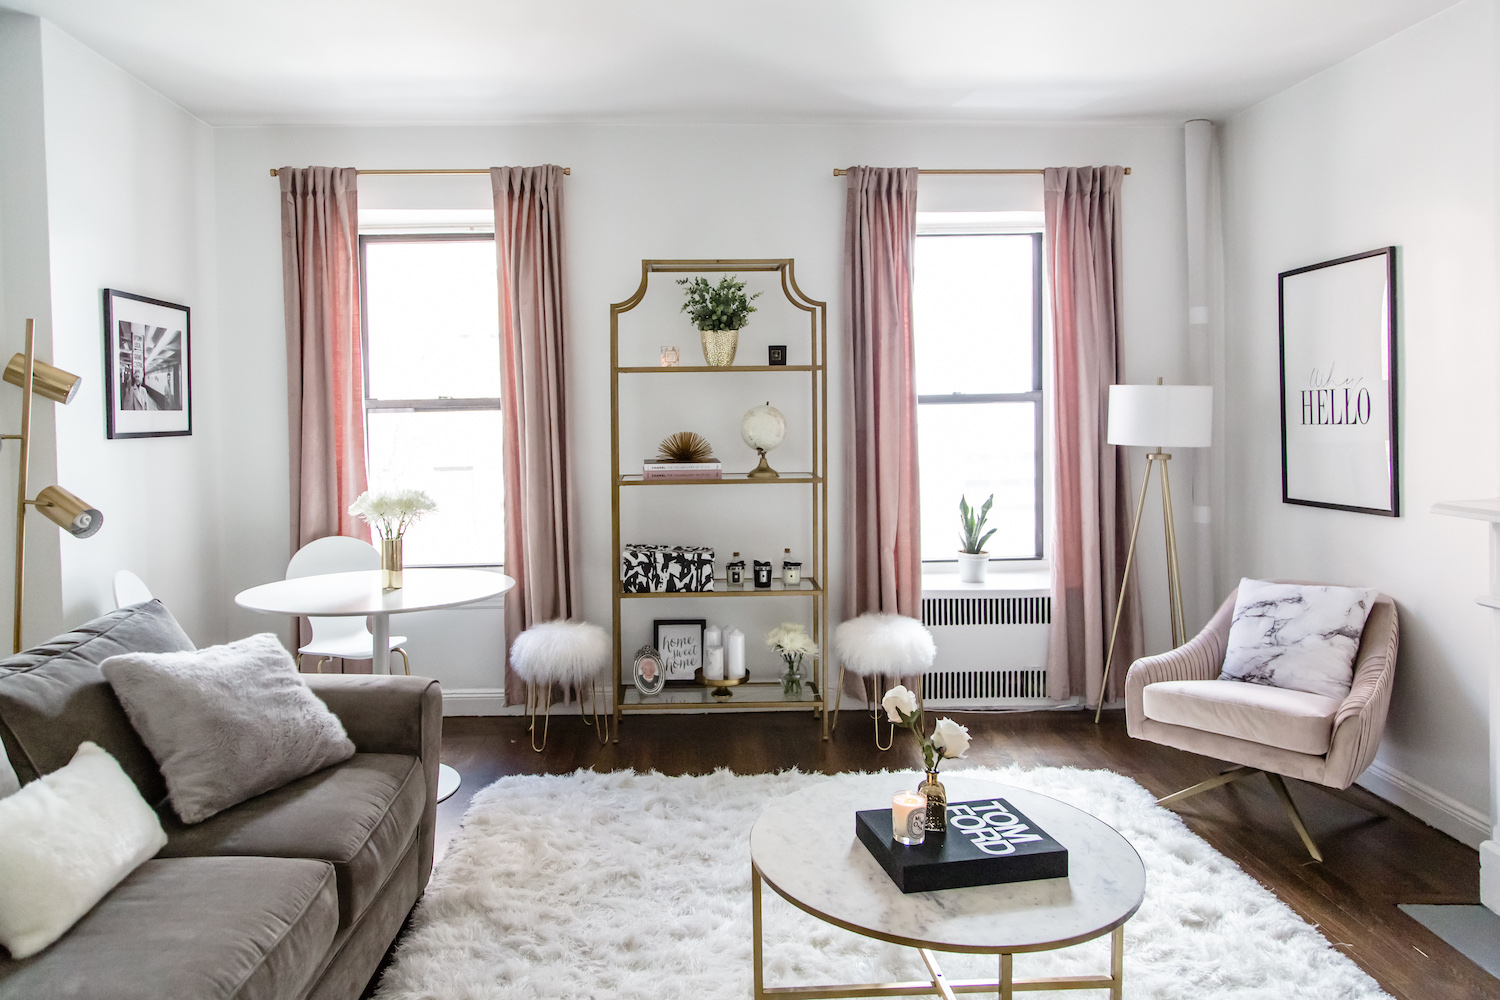 Living room tour living room transformation nyc - Decor ideas for living room apartment ...